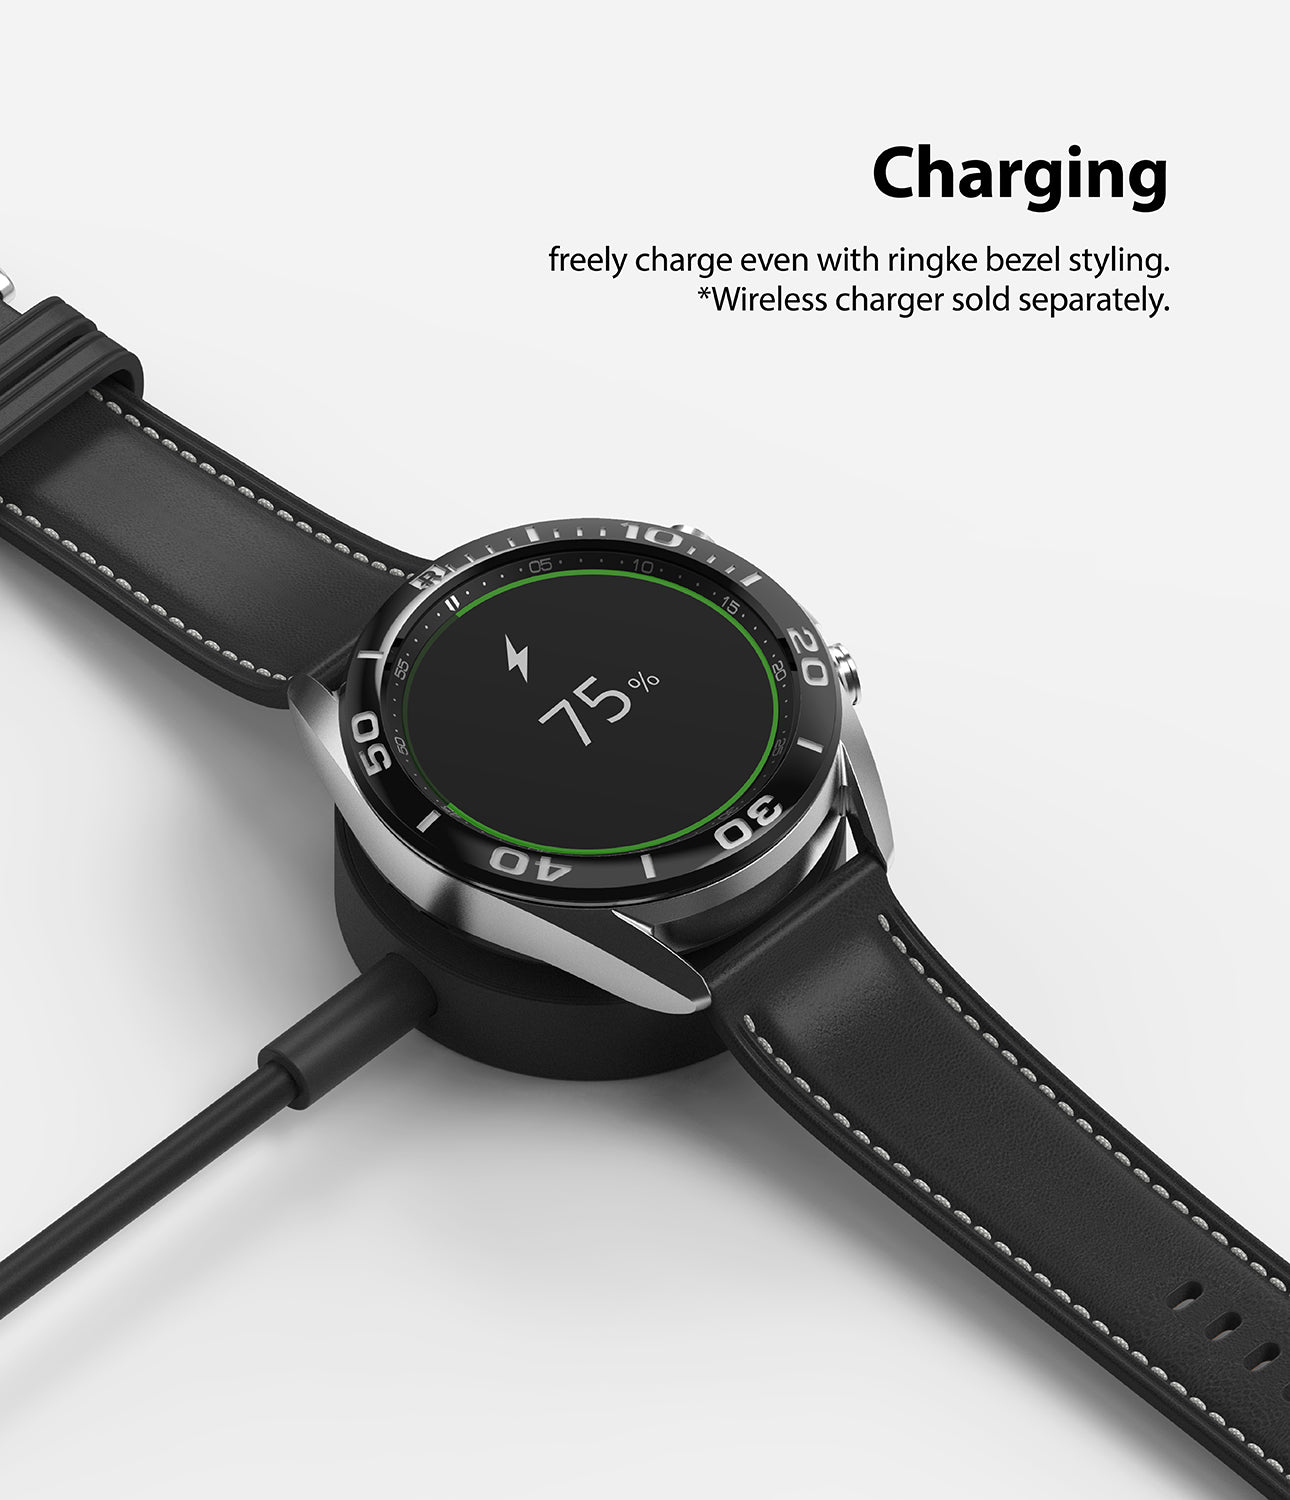 freely charge even with bezel styling on. *charging accessories sold separately